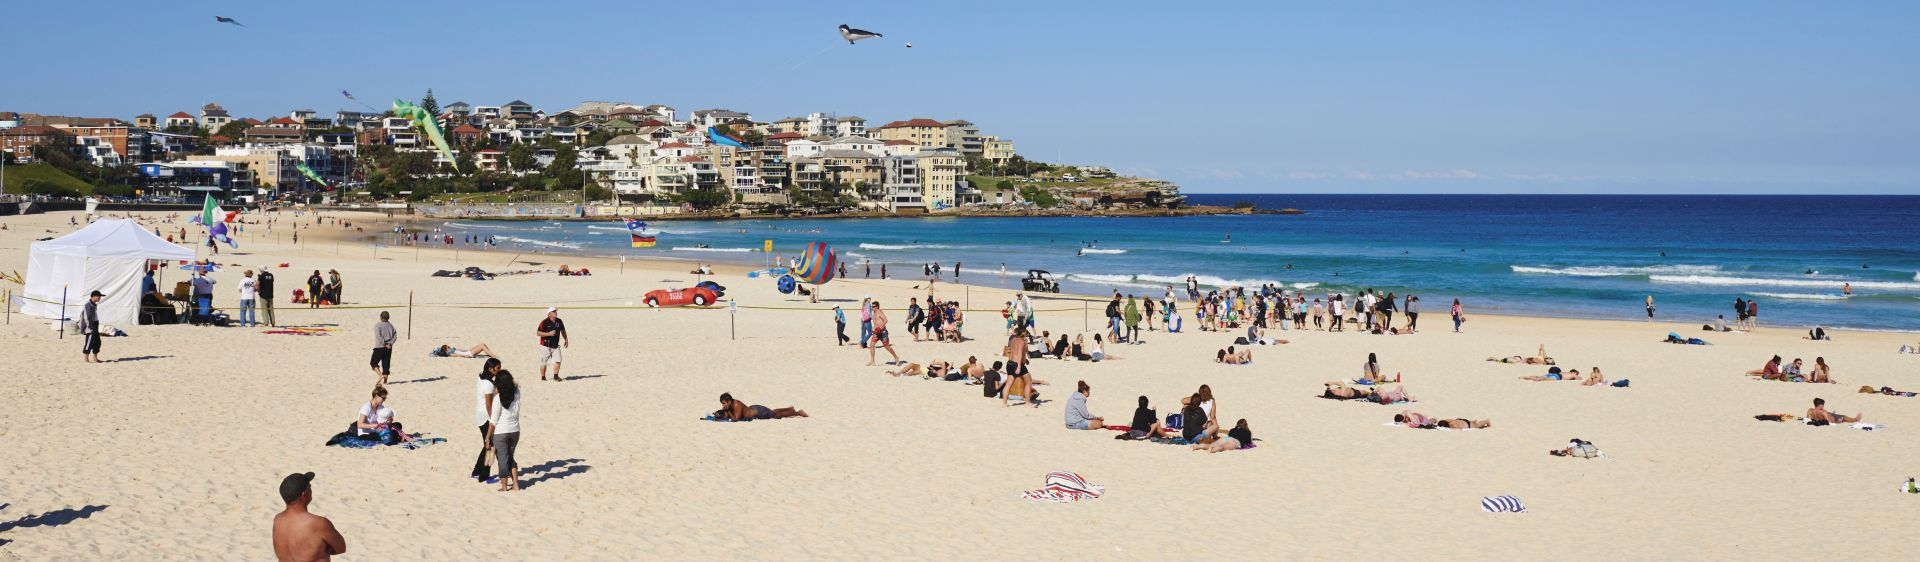 Bondi, Sydney - Plan a Holiday - Bondi Beach, Accommodation & Surf